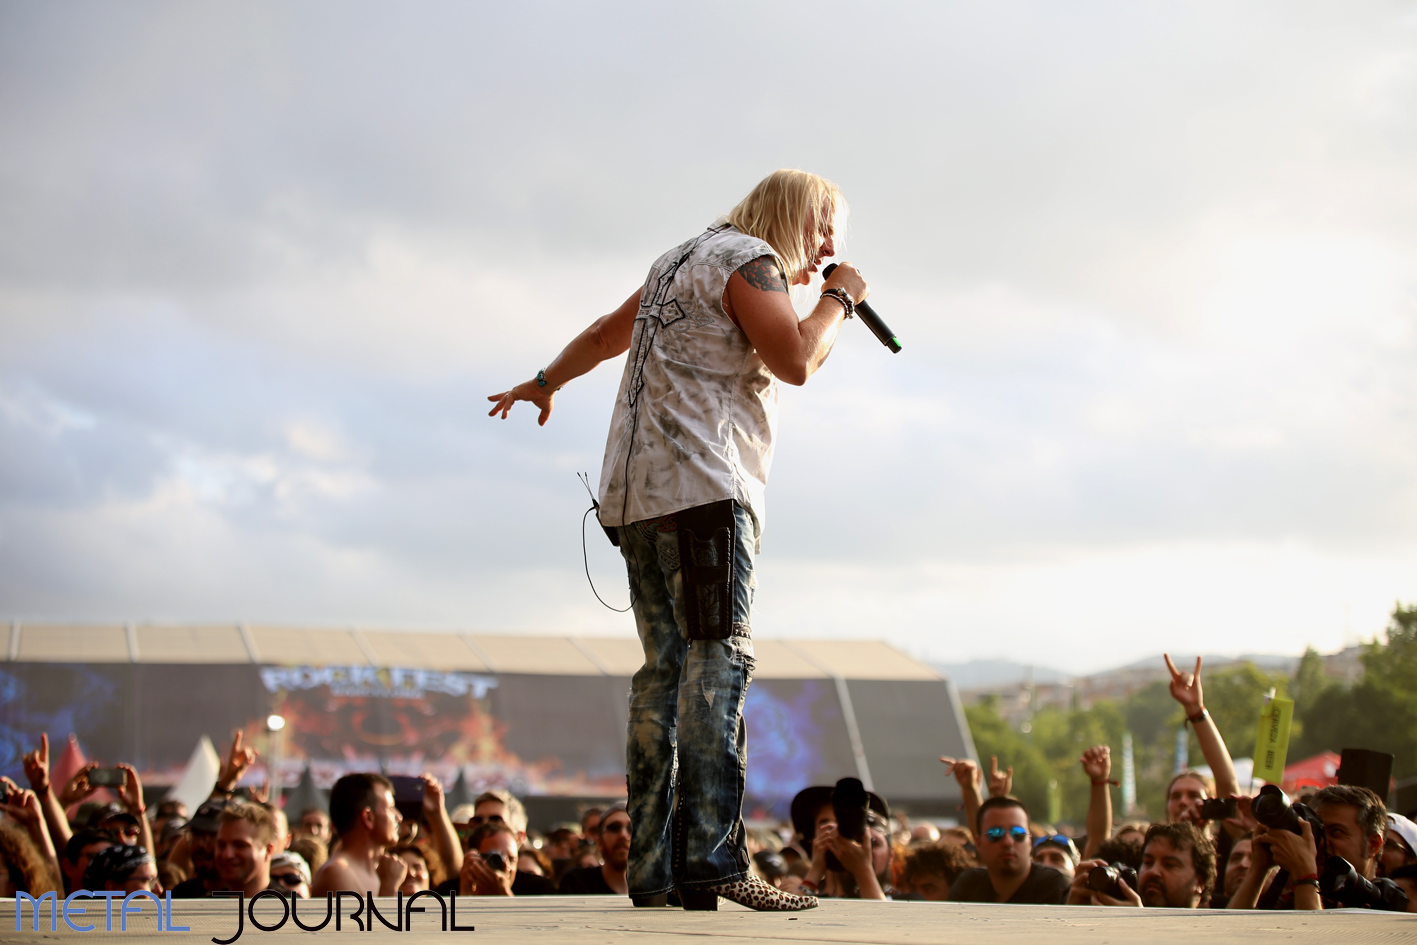 uriah heep rock fest 18 - metal journal pic 7